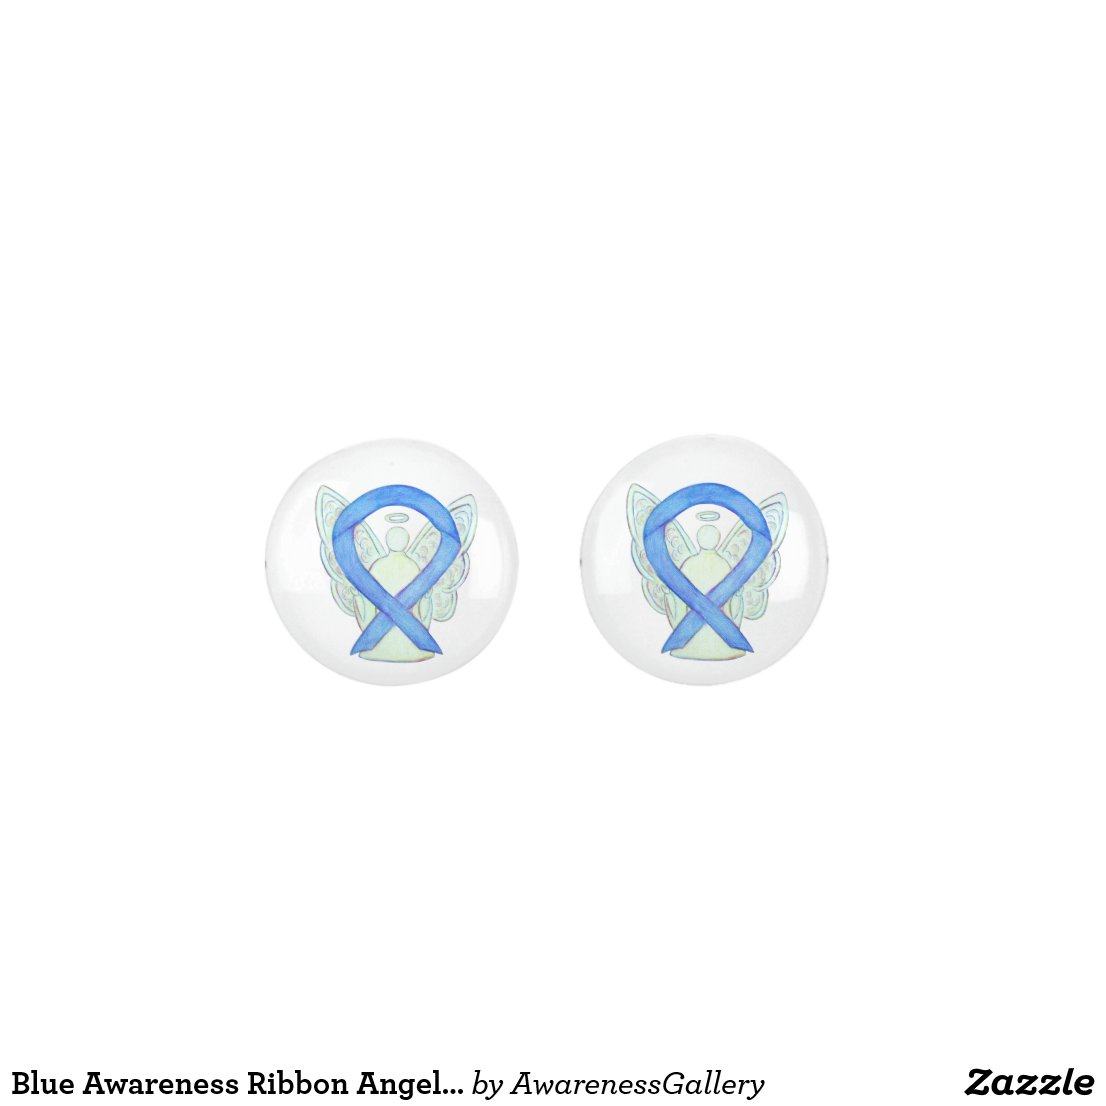 Blue Awareness Ribbon Angel Jewelry Earrings